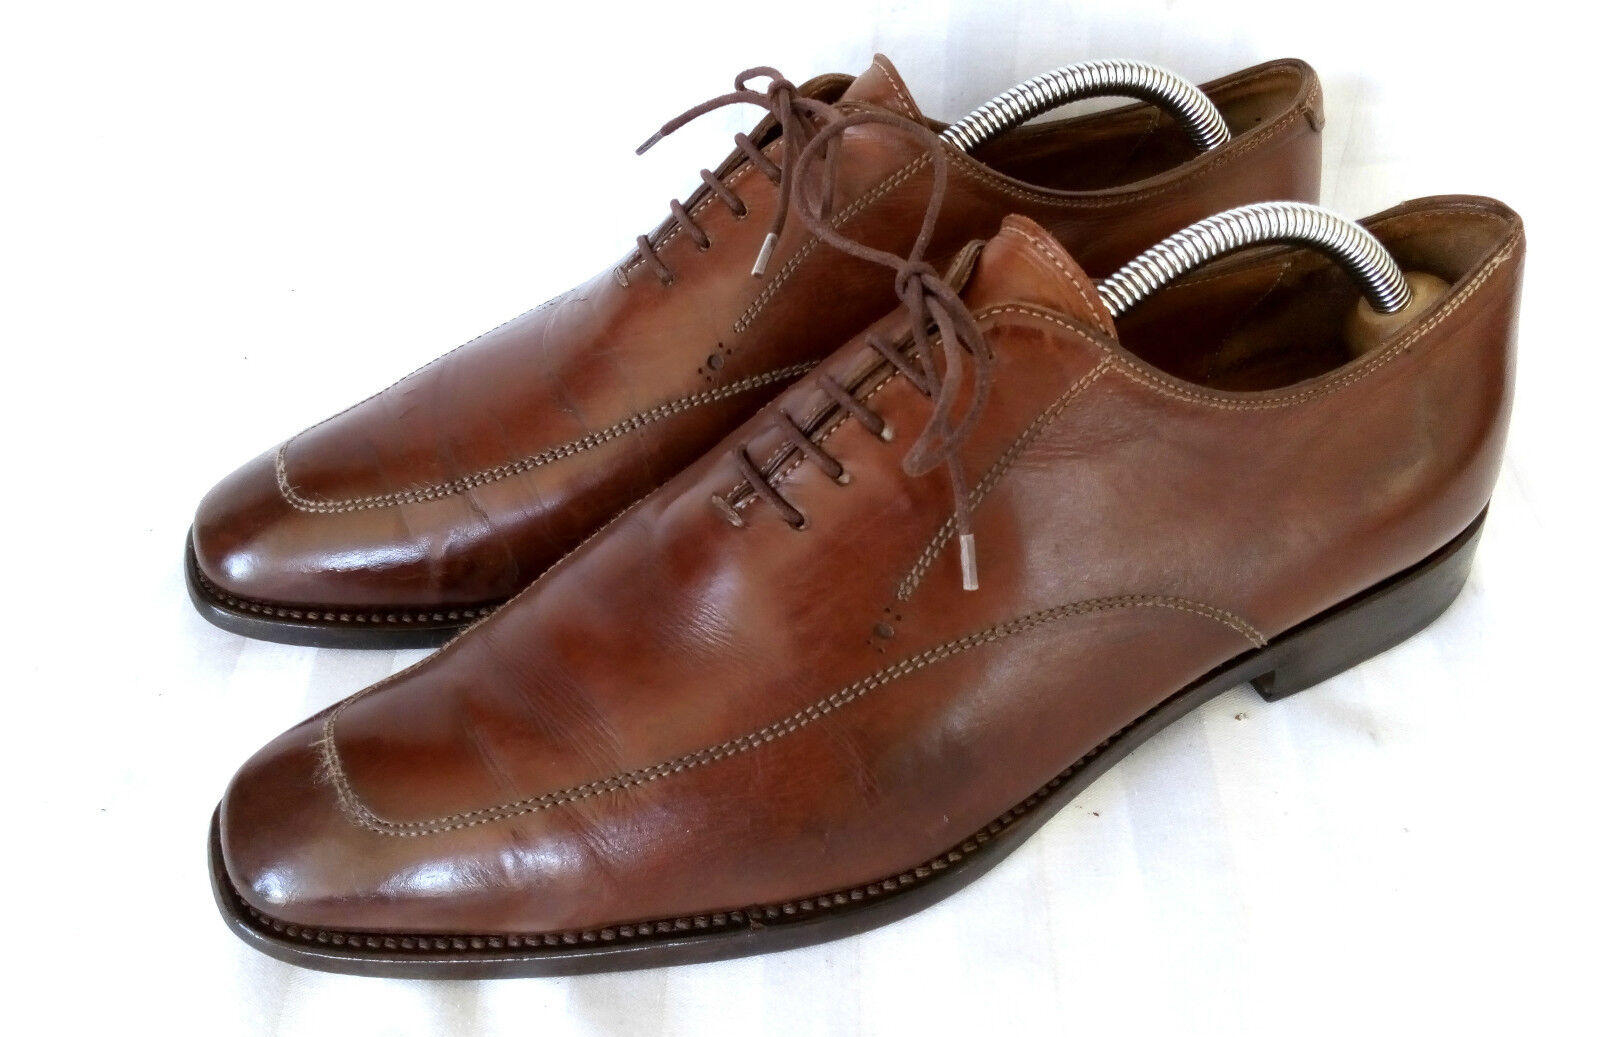 W. Gibbs Wholecut Oxford Business Herrenschuhe Braun Rahmengenäht (42) Gr. 43